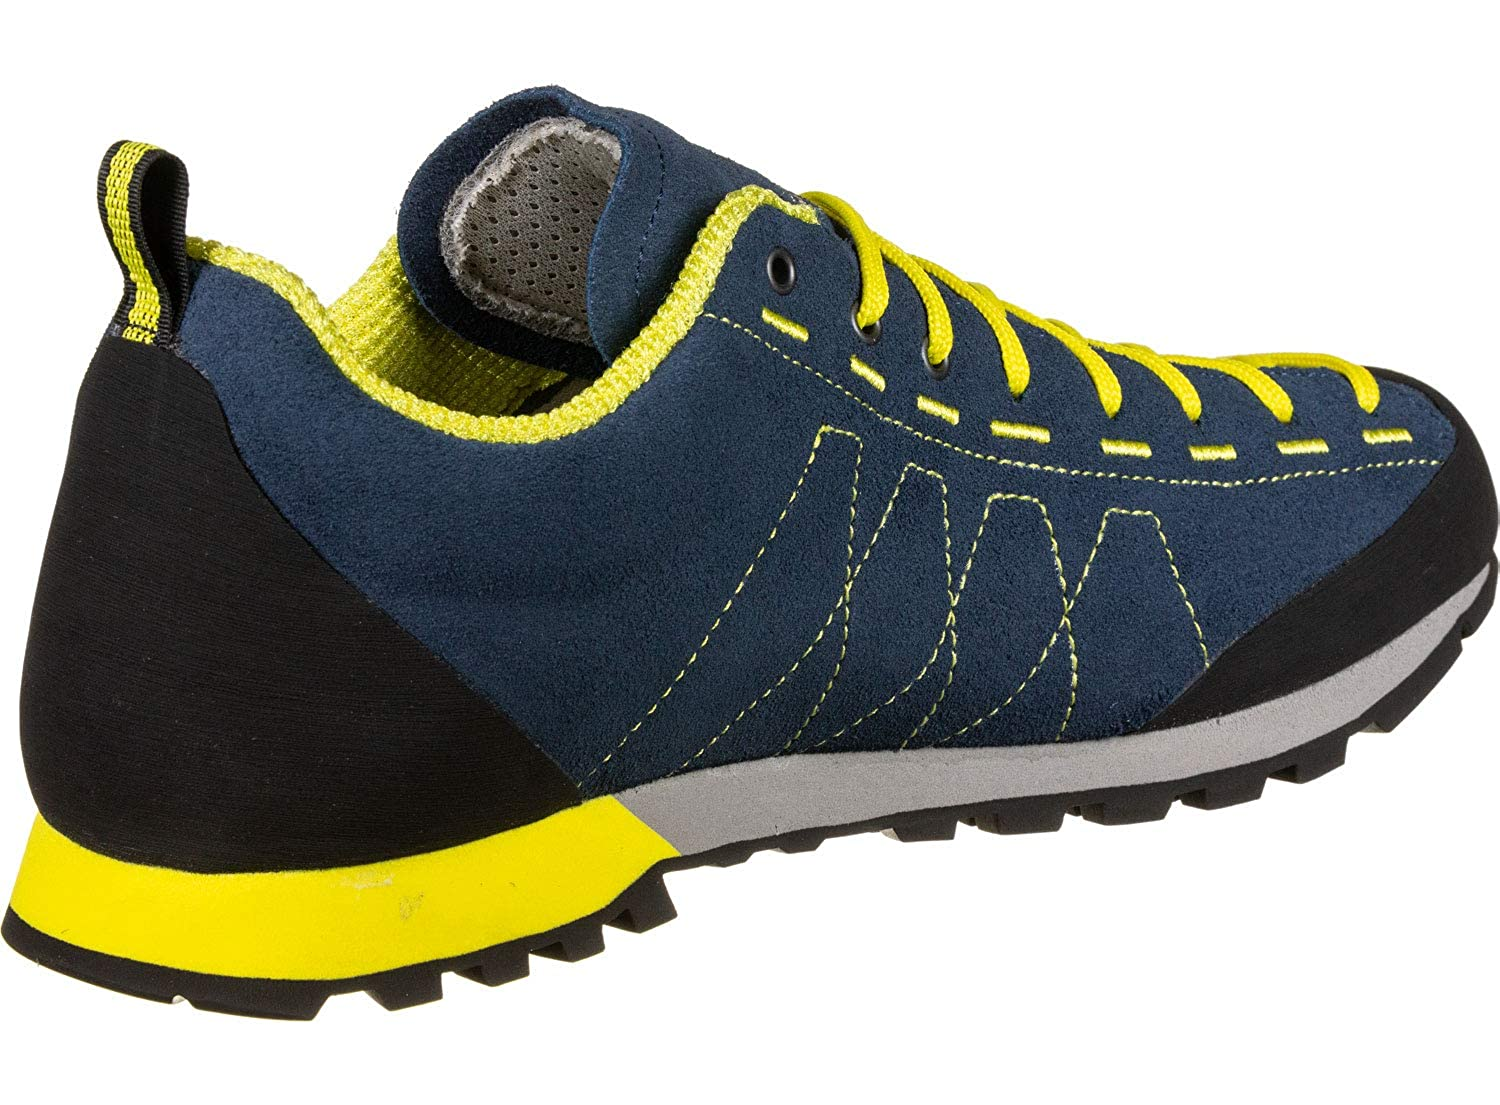 SS19 Scarpa Highball Shoes